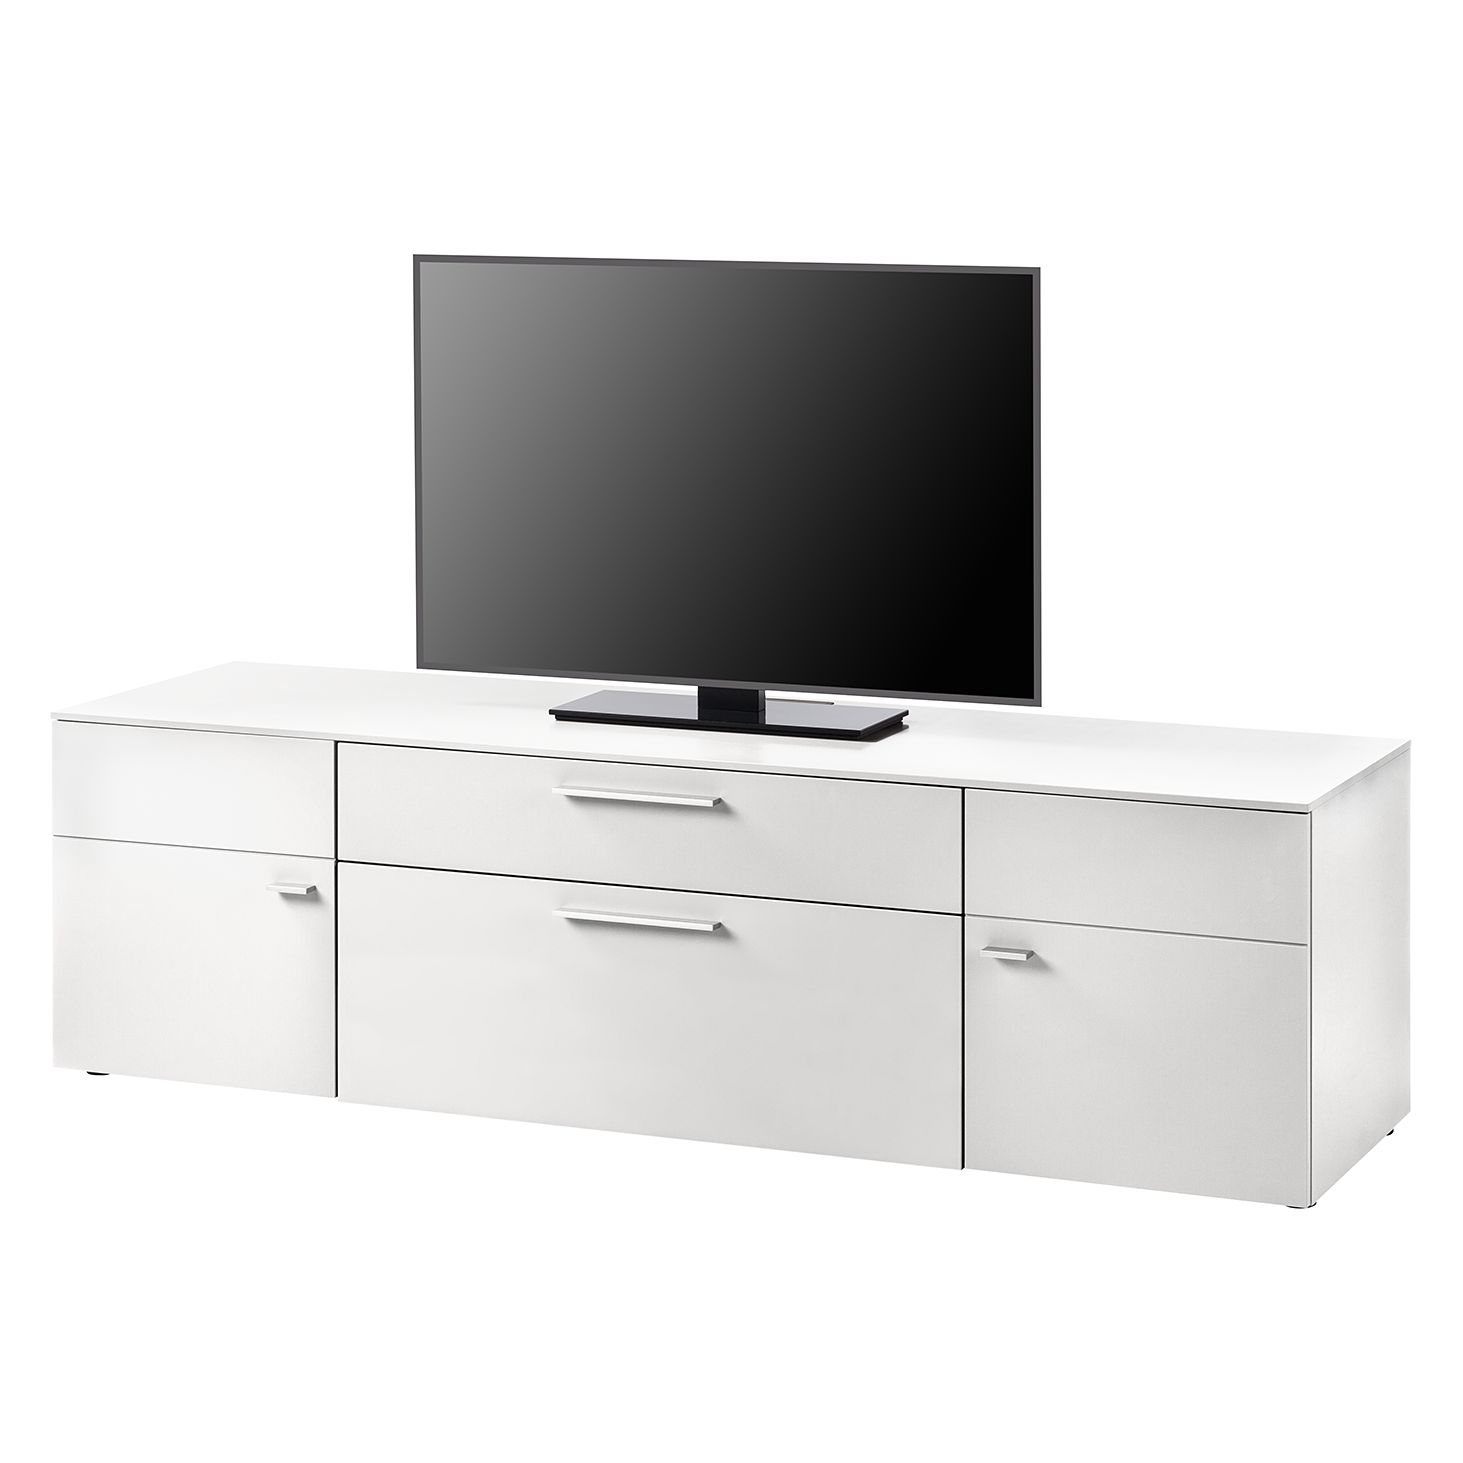 Meuble TV Anzio I - Blanc mat, Netfurn by GWINNER